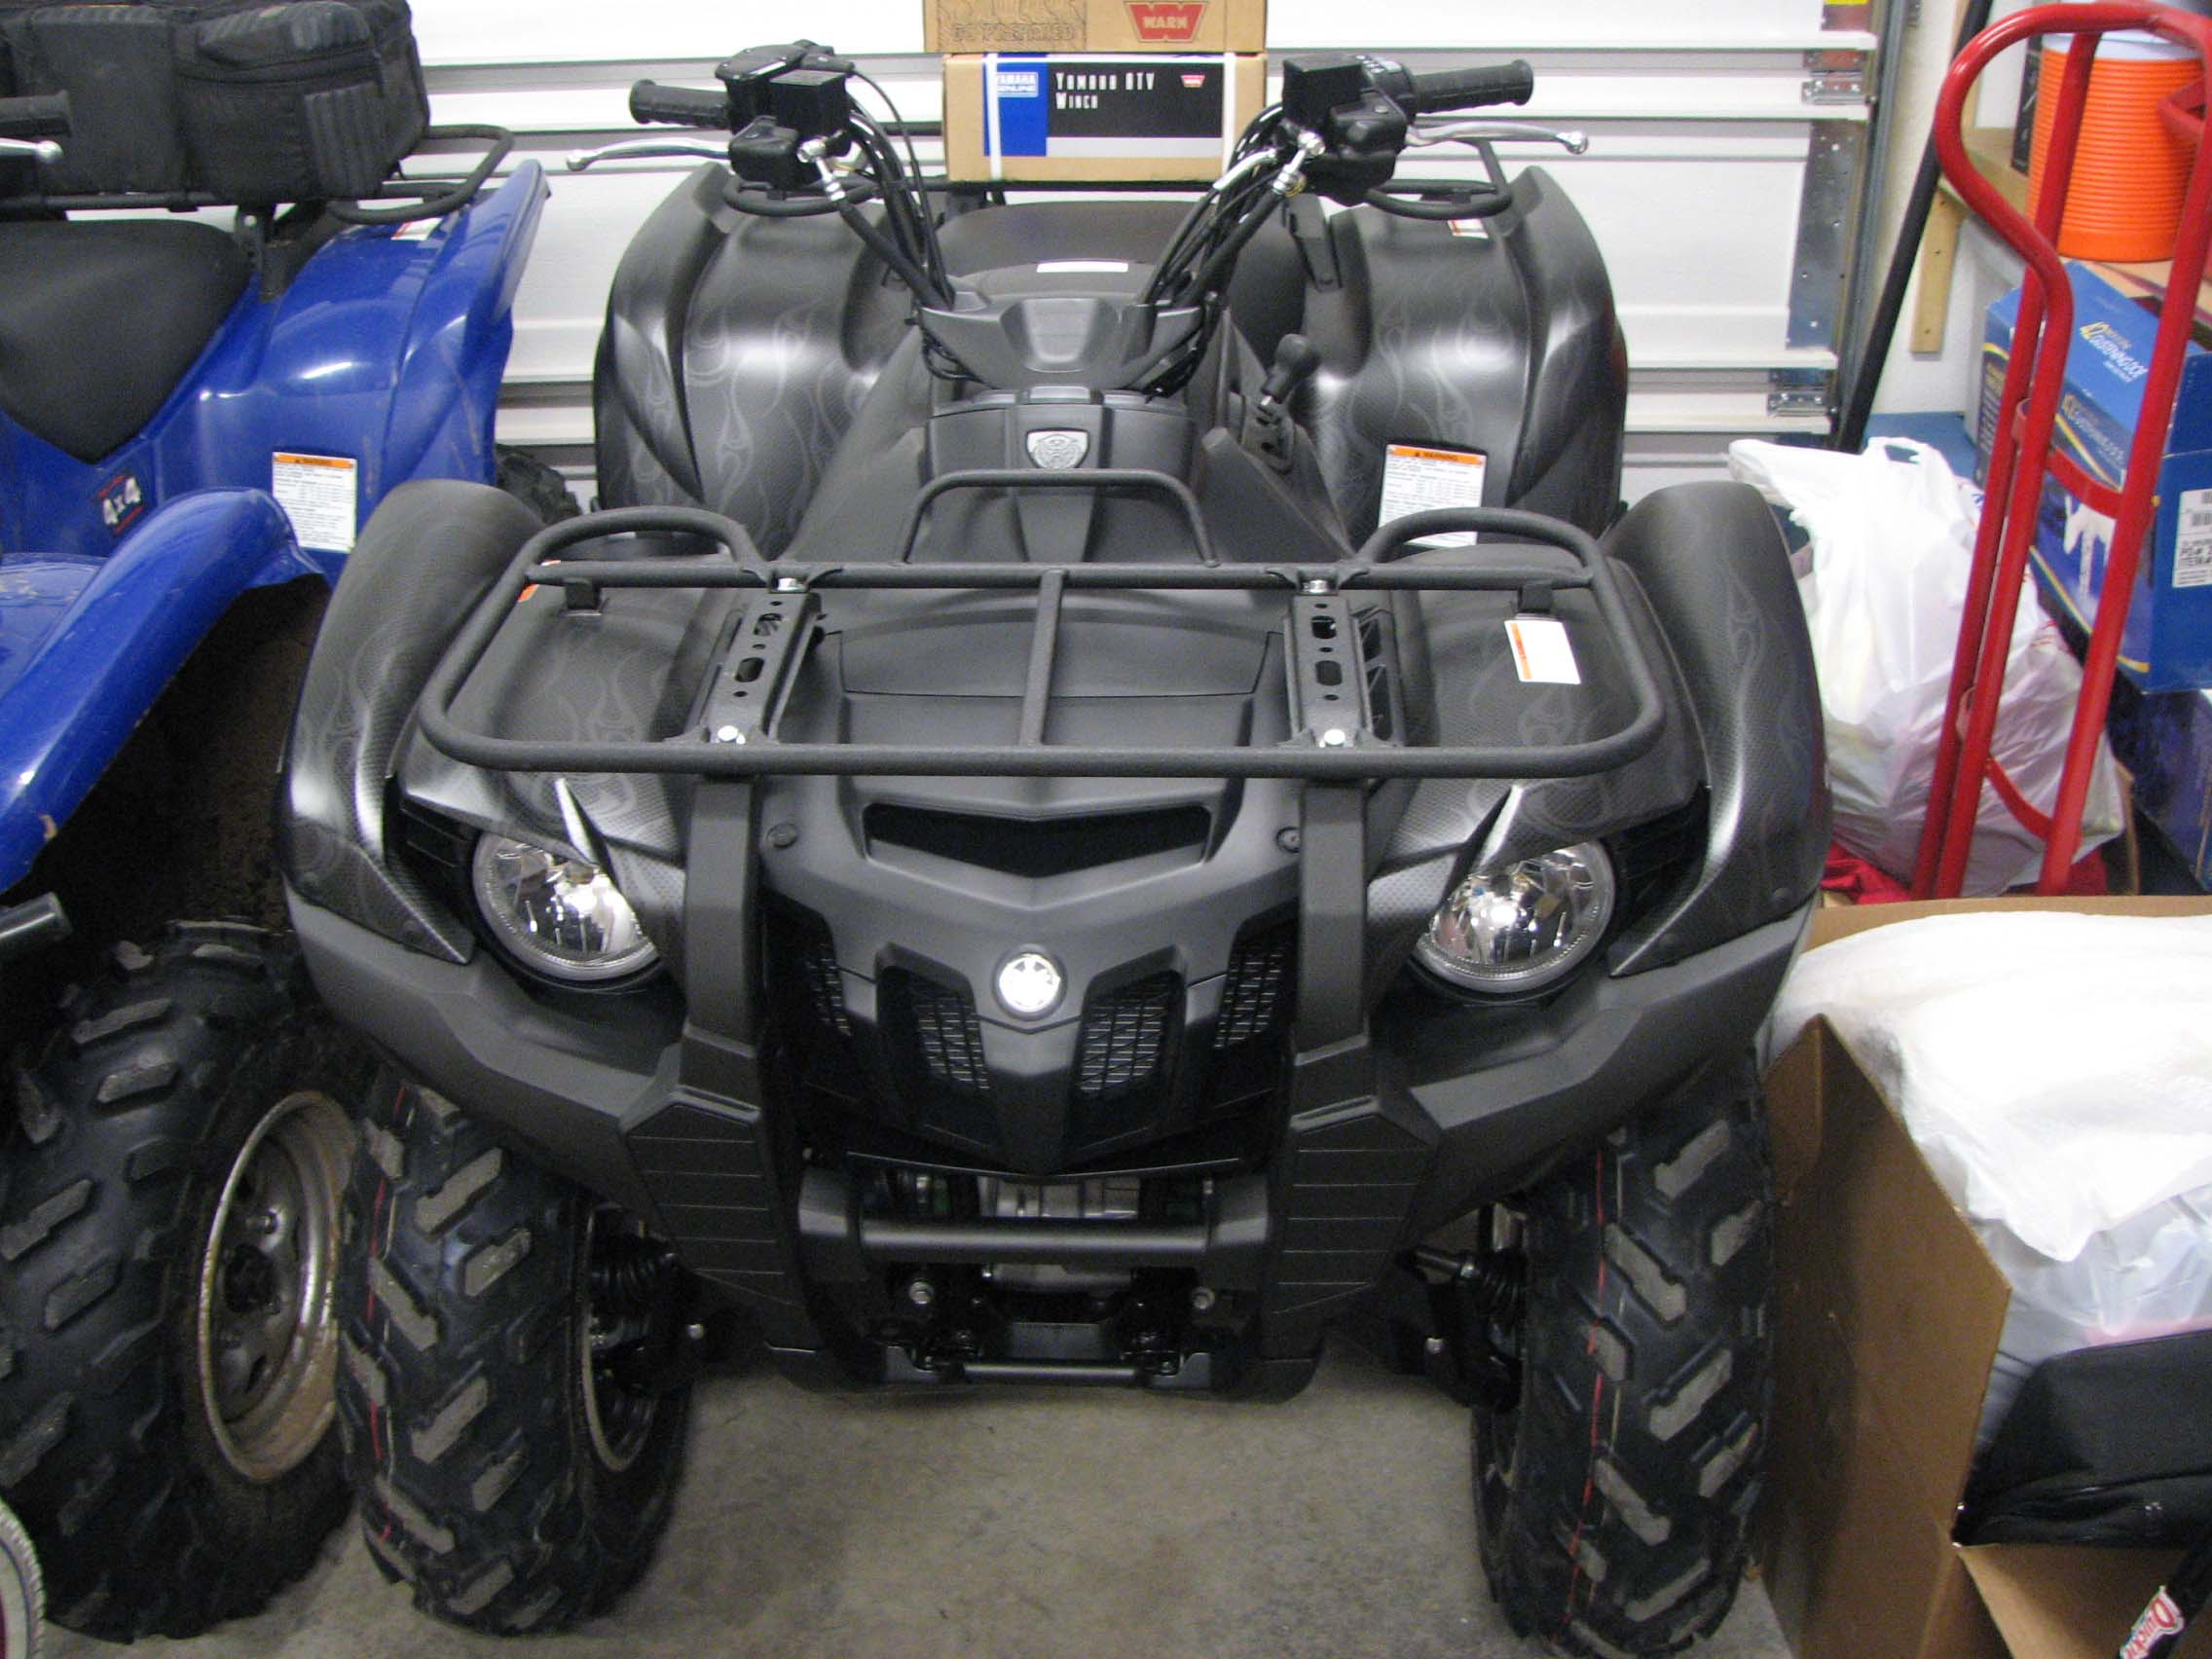 2017 Yamaha Grizzly >> MY 08 SE 700 GRIZZLY IS HERE - Yamaha Grizzly ATV Forum